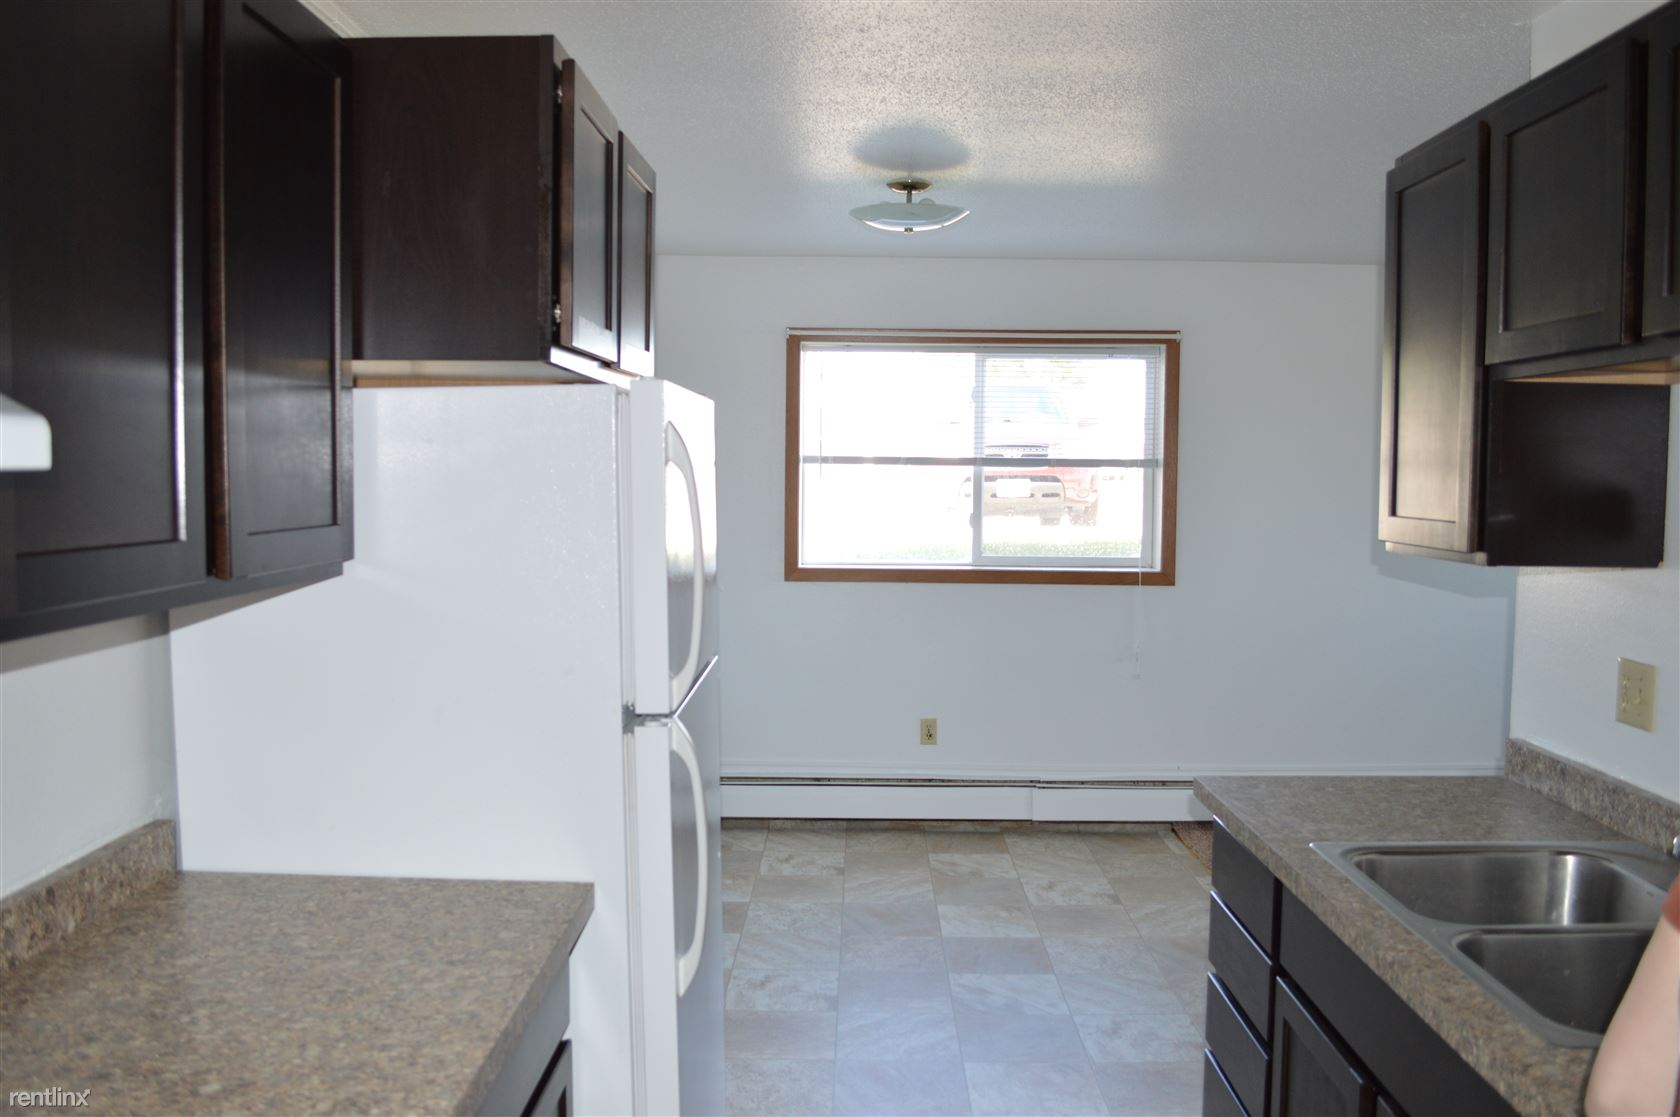 1510 11th Ave NE, Jamestown, ND - $525